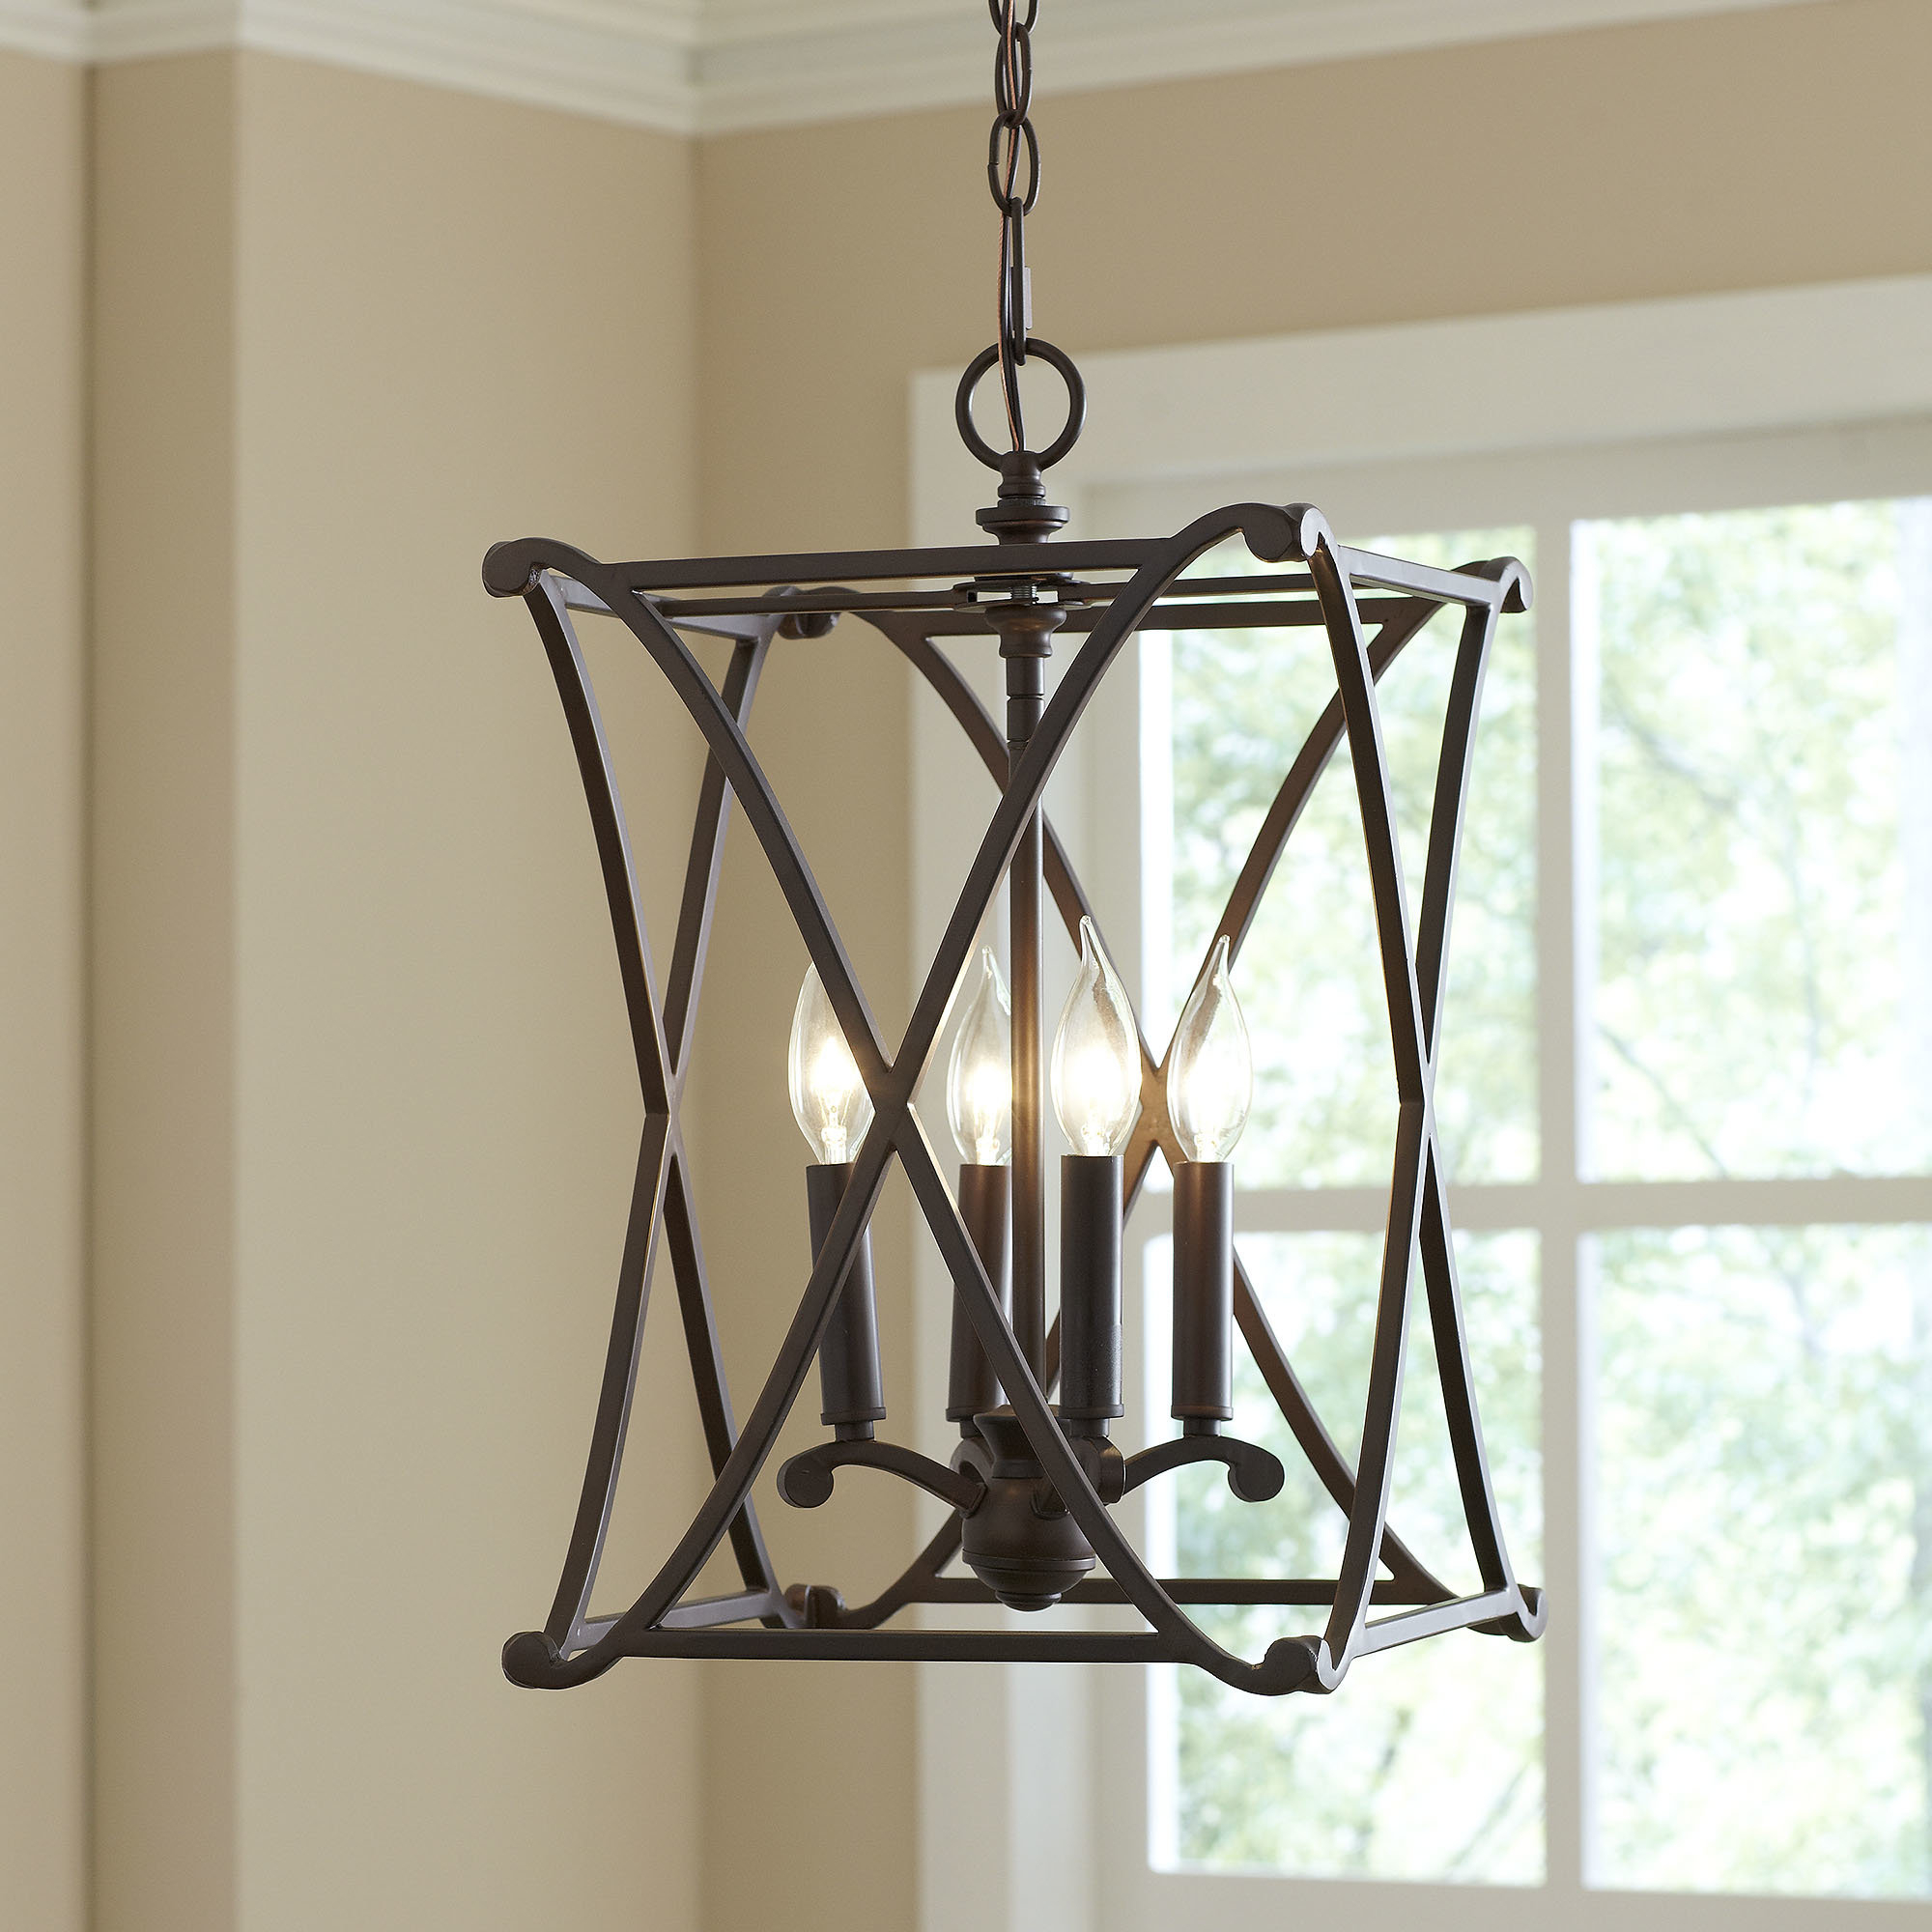 Carmen 6 Light Lantern Geometric Pendants Throughout Famous Nisbet 6 Light Lantern Geometric Pendant (View 14 of 20)